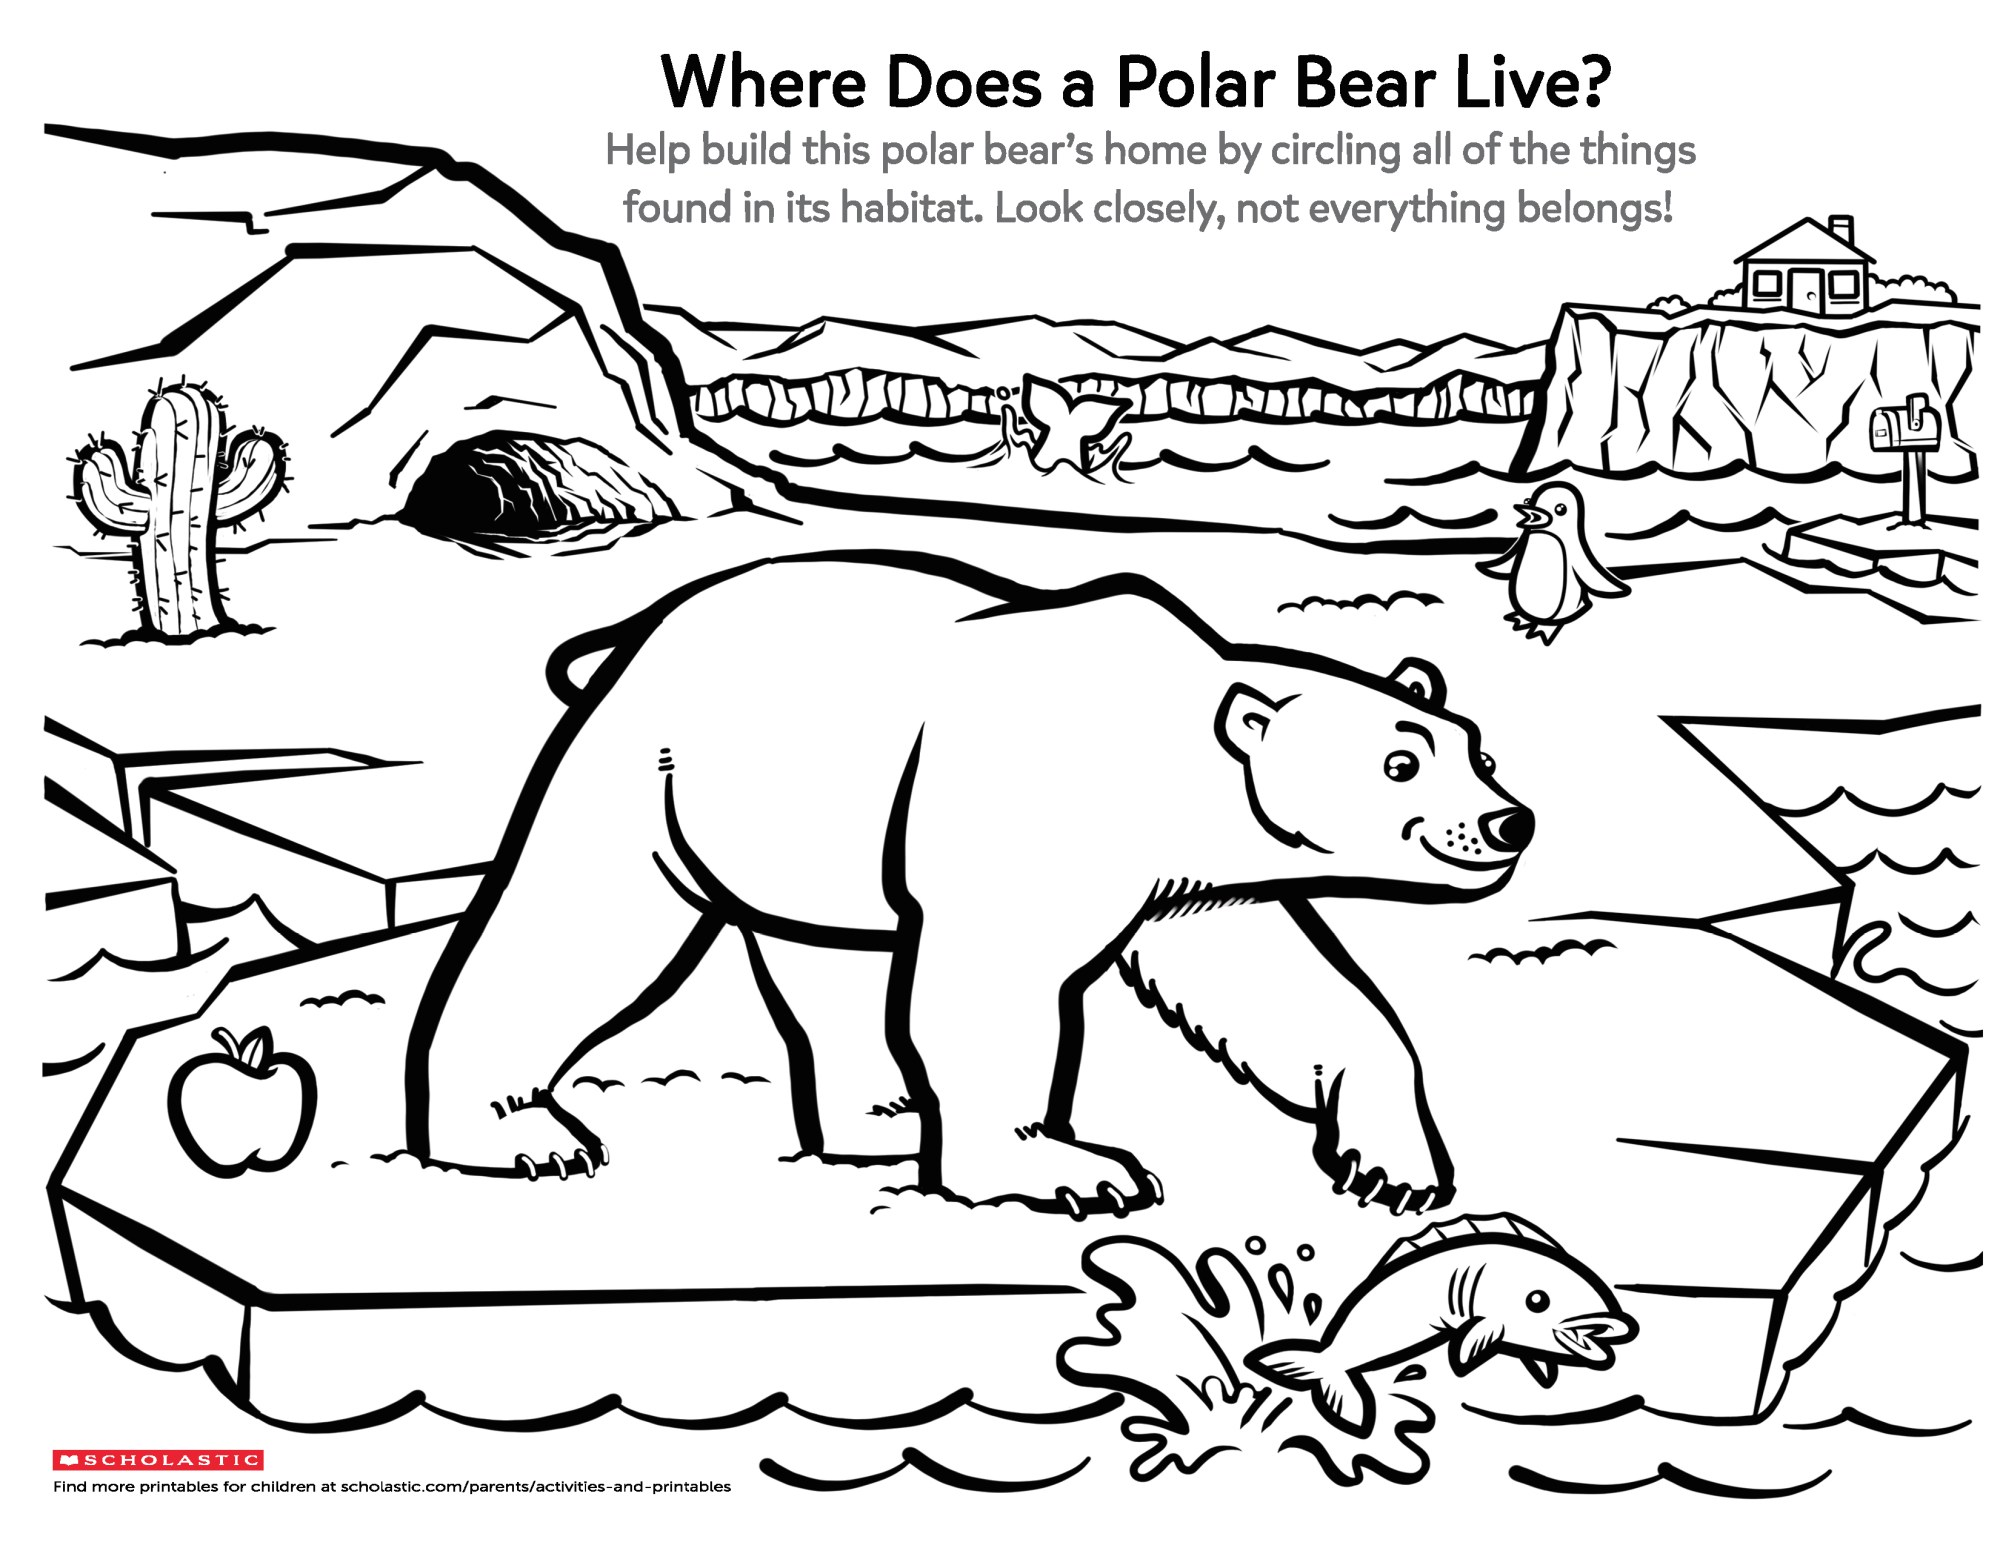 hight resolution of Learn About a Polar Bear's Home   Worksheets \u0026 Printables   Scholastic    Parents